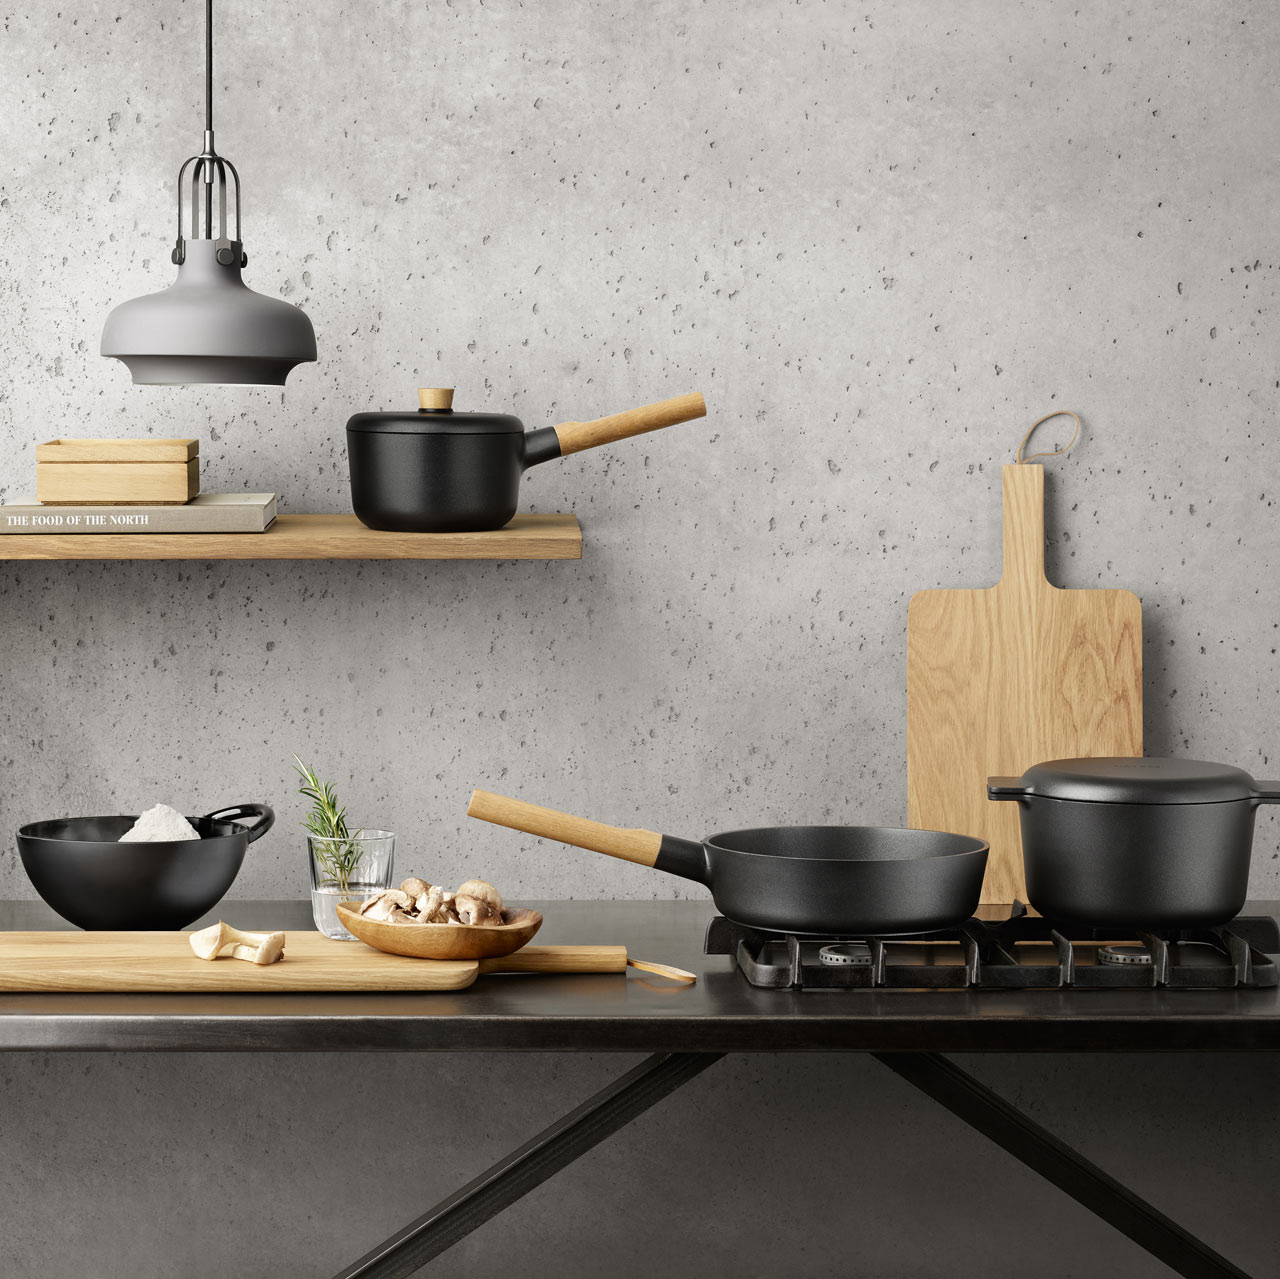 kitchenware white label products to sell